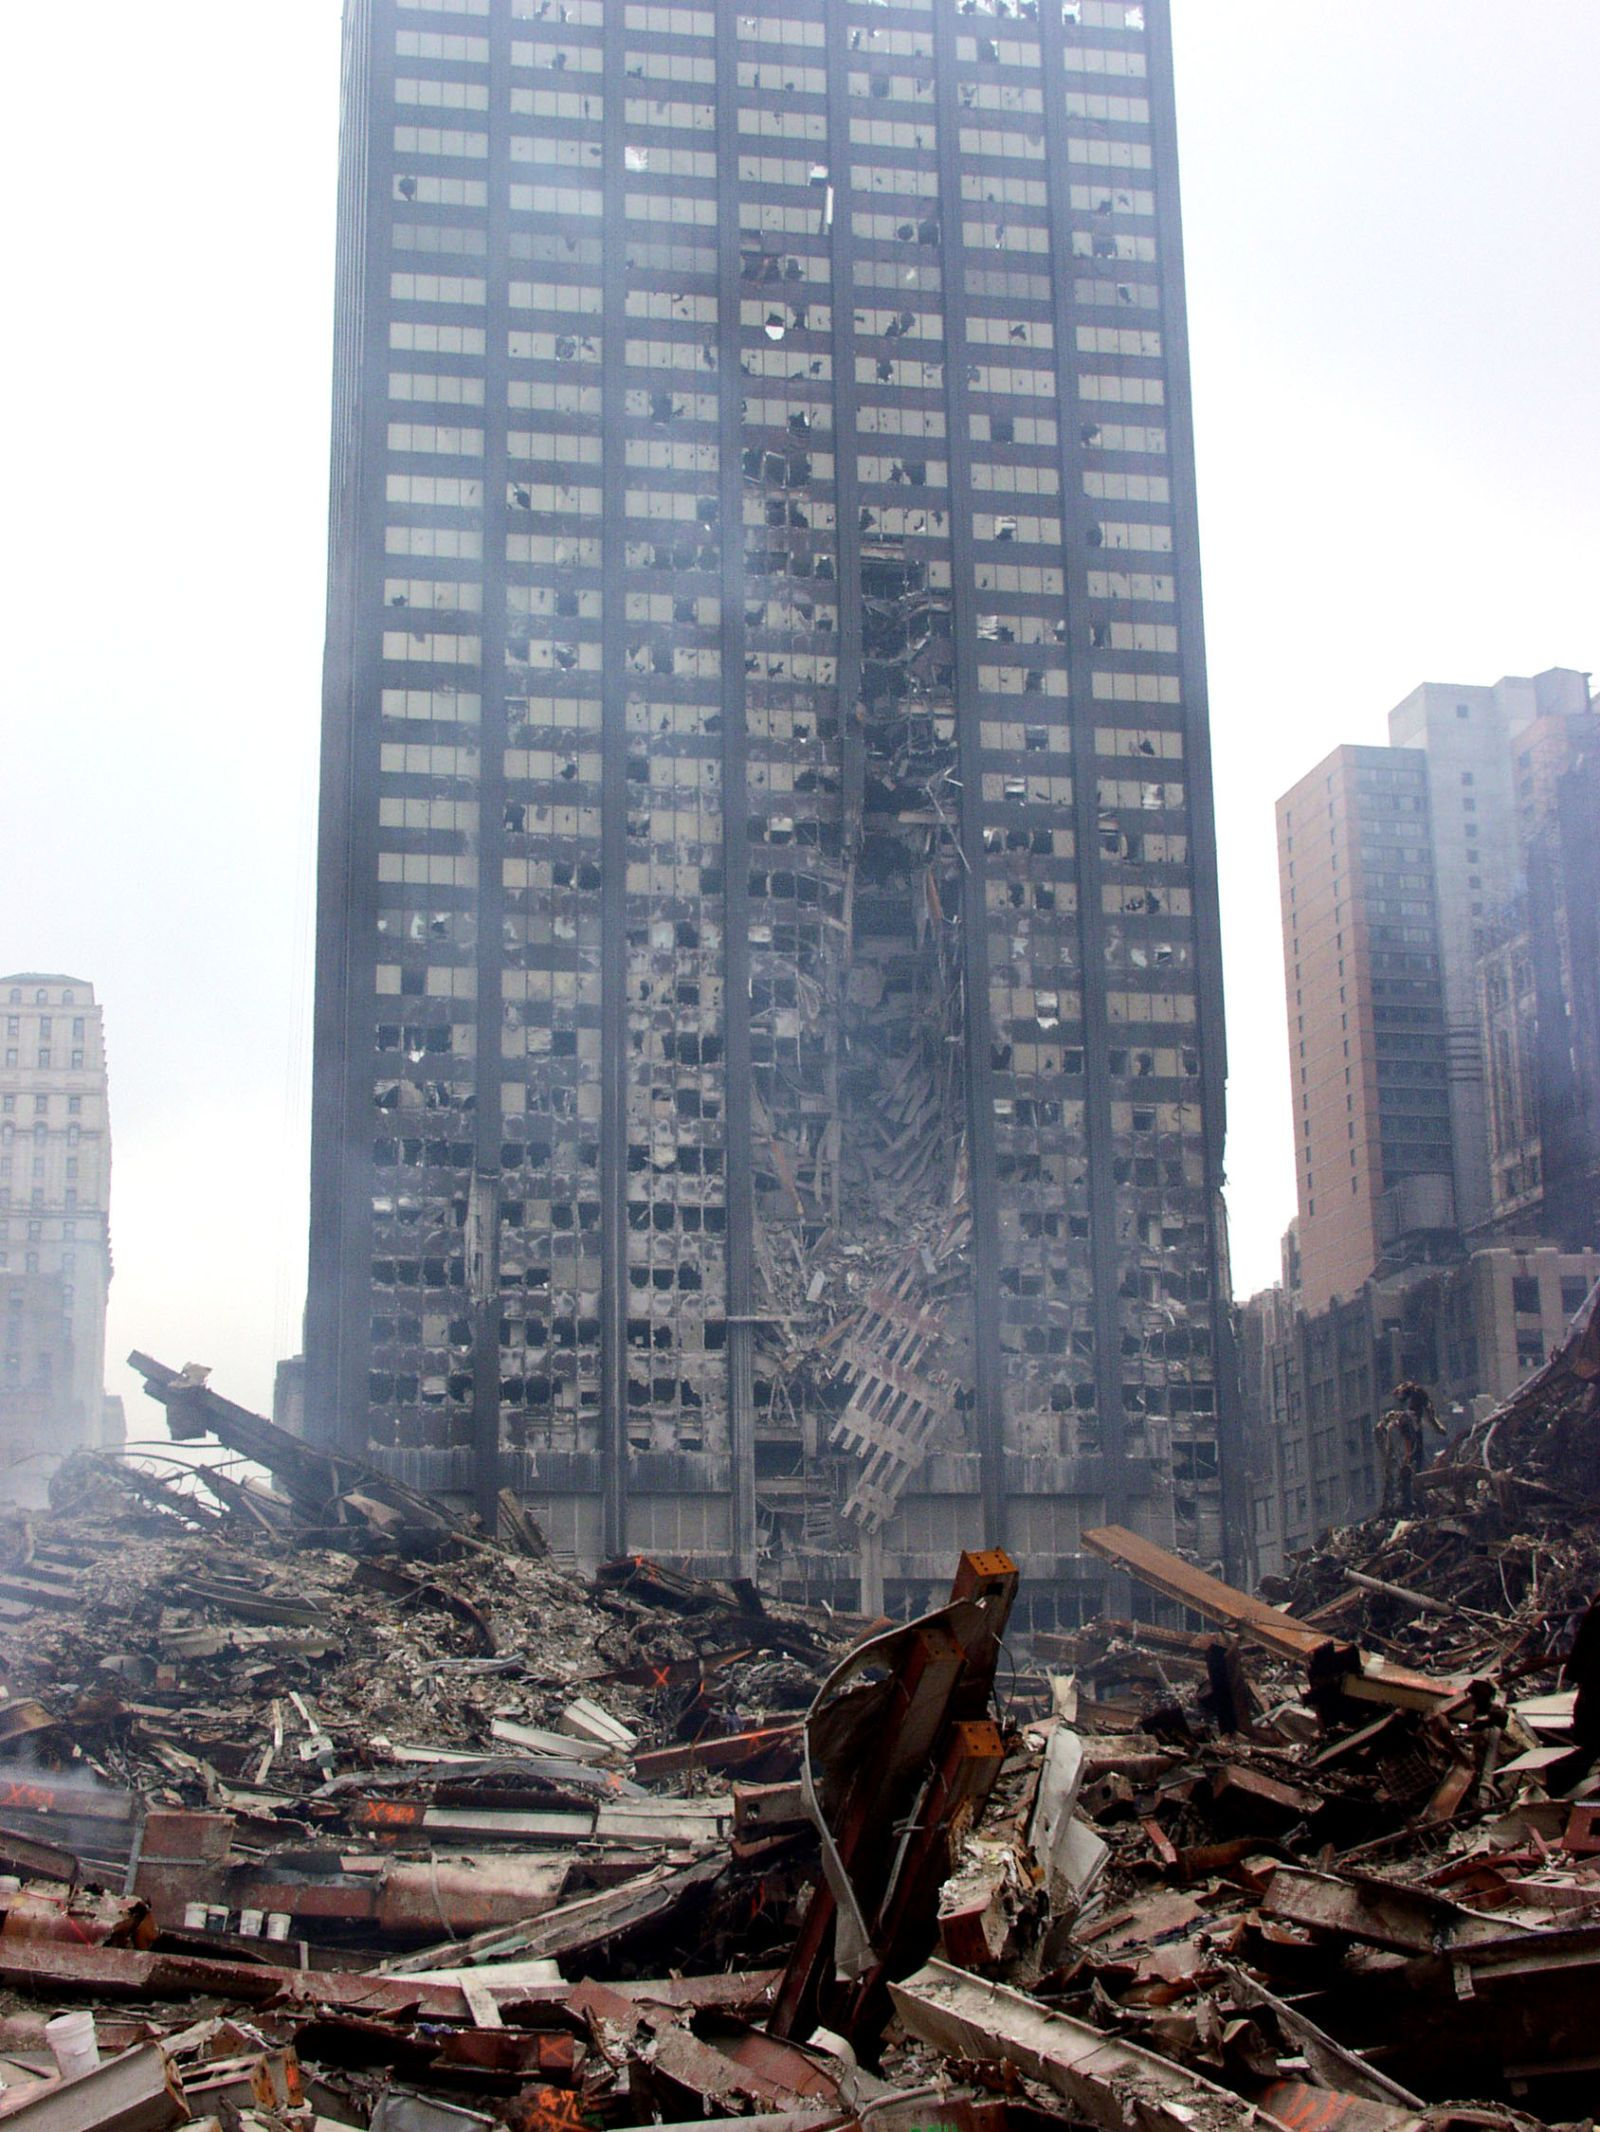 20 Iconic Structures Demolished in Past 20 Years Banks